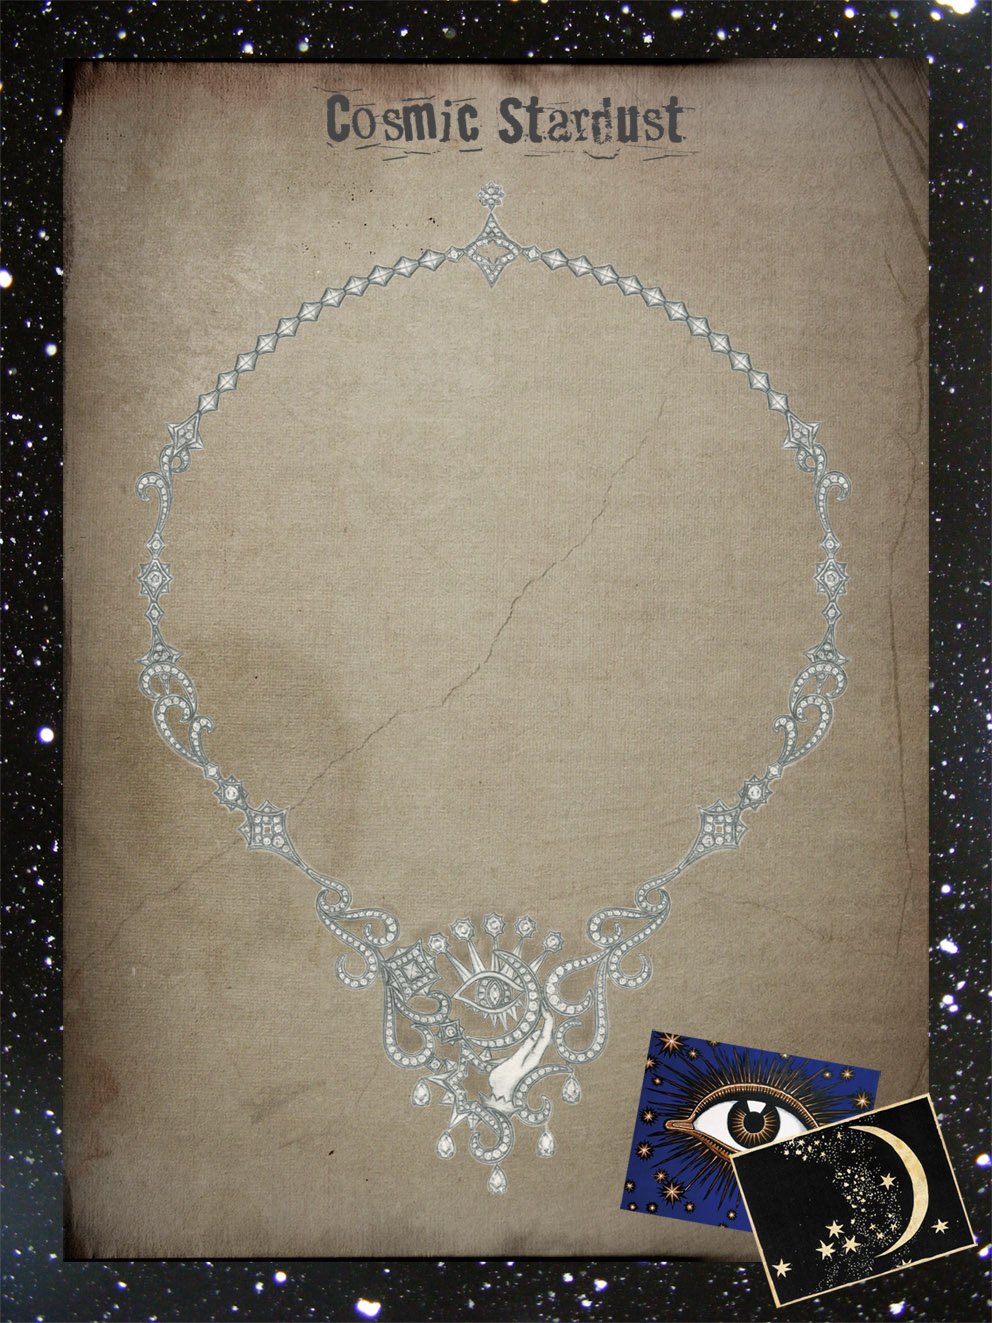 Cosmic Stardust:  White gold & diamond necklace. Pencil illustration